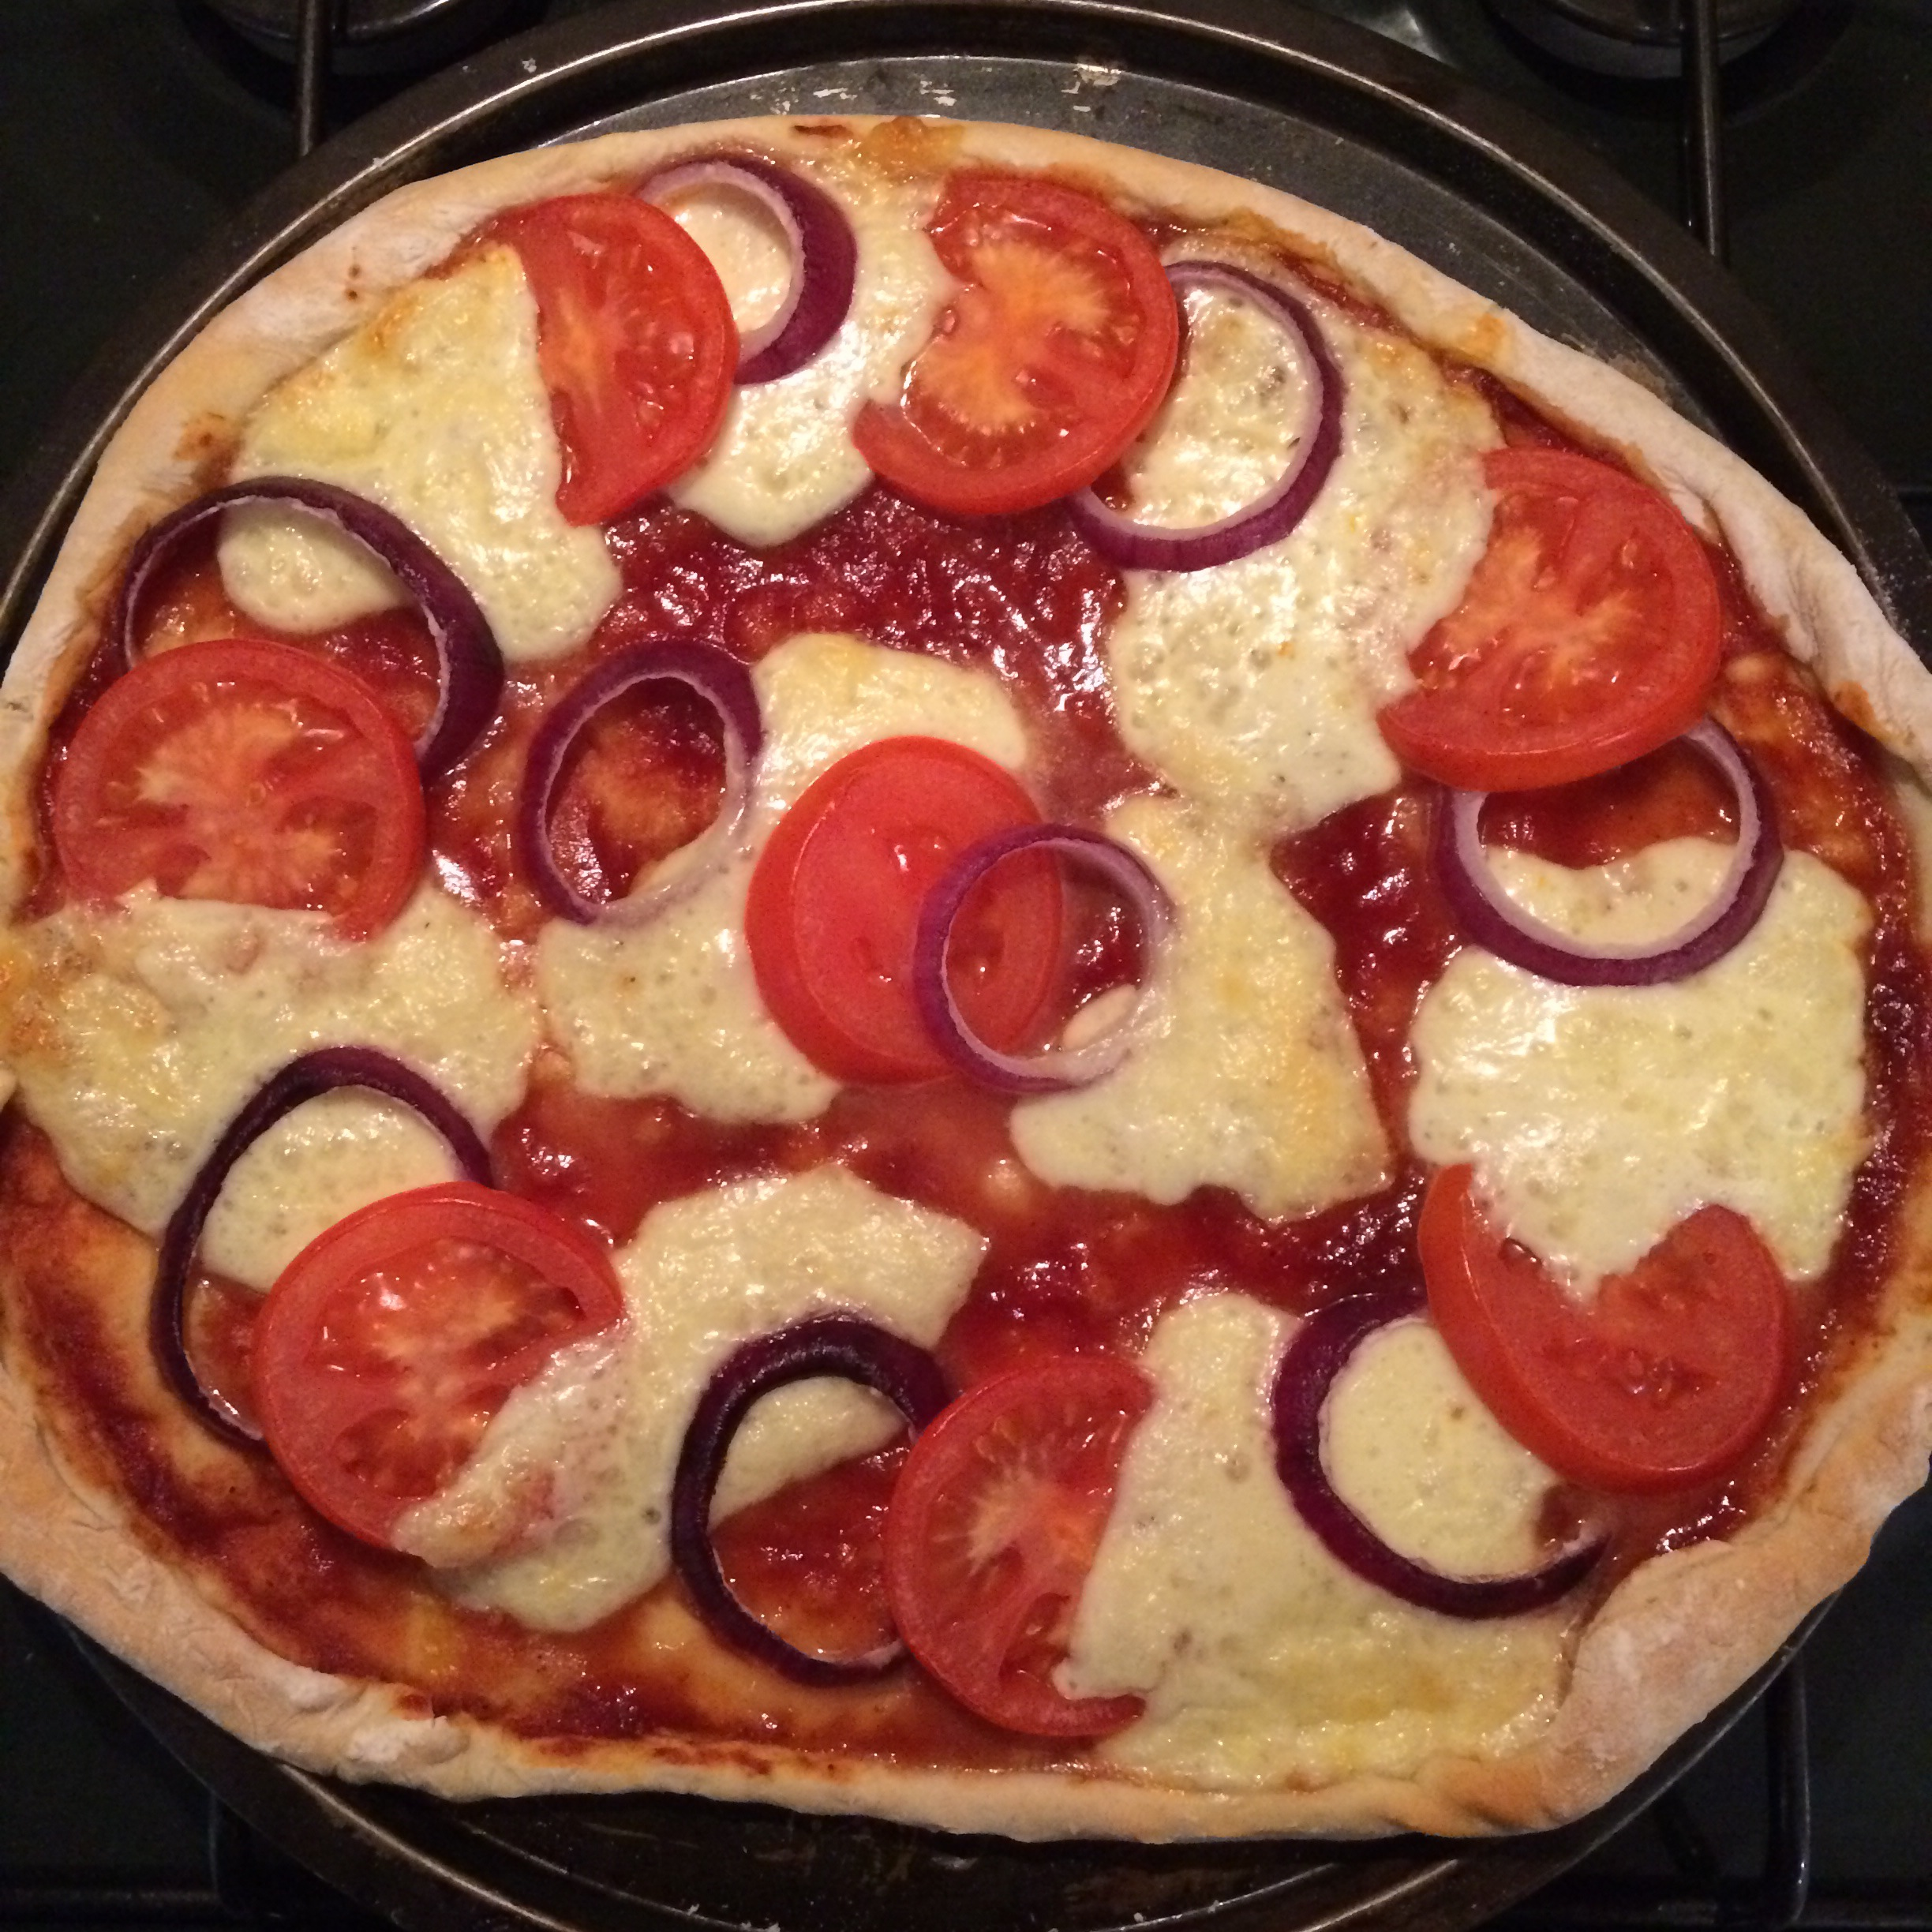 Tomato, mozzerella & red onion pizza